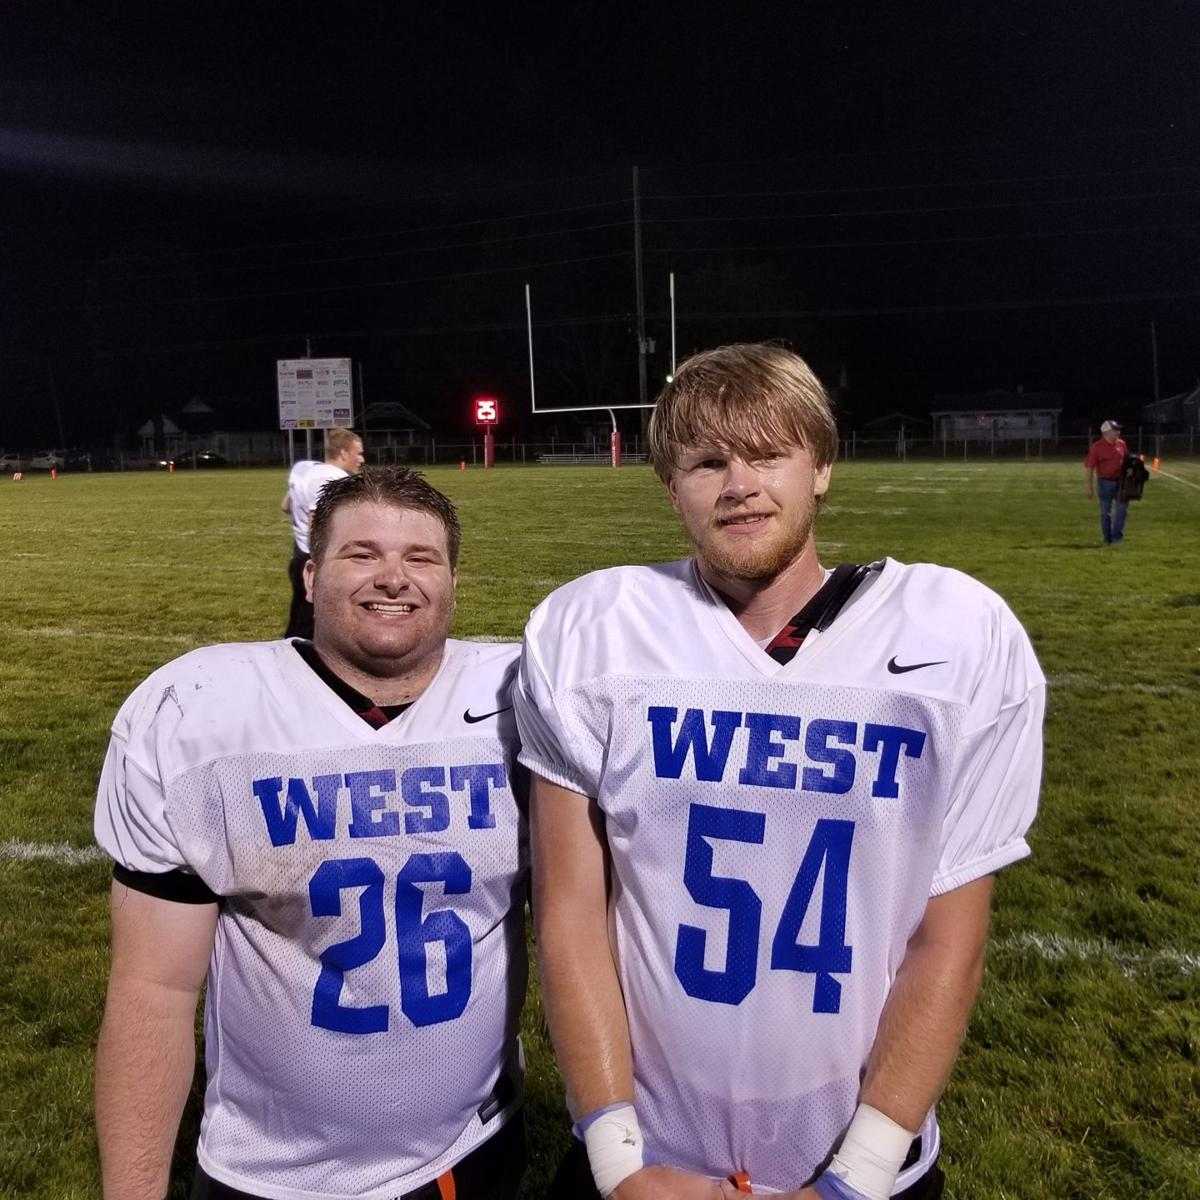 WH West All Stars !